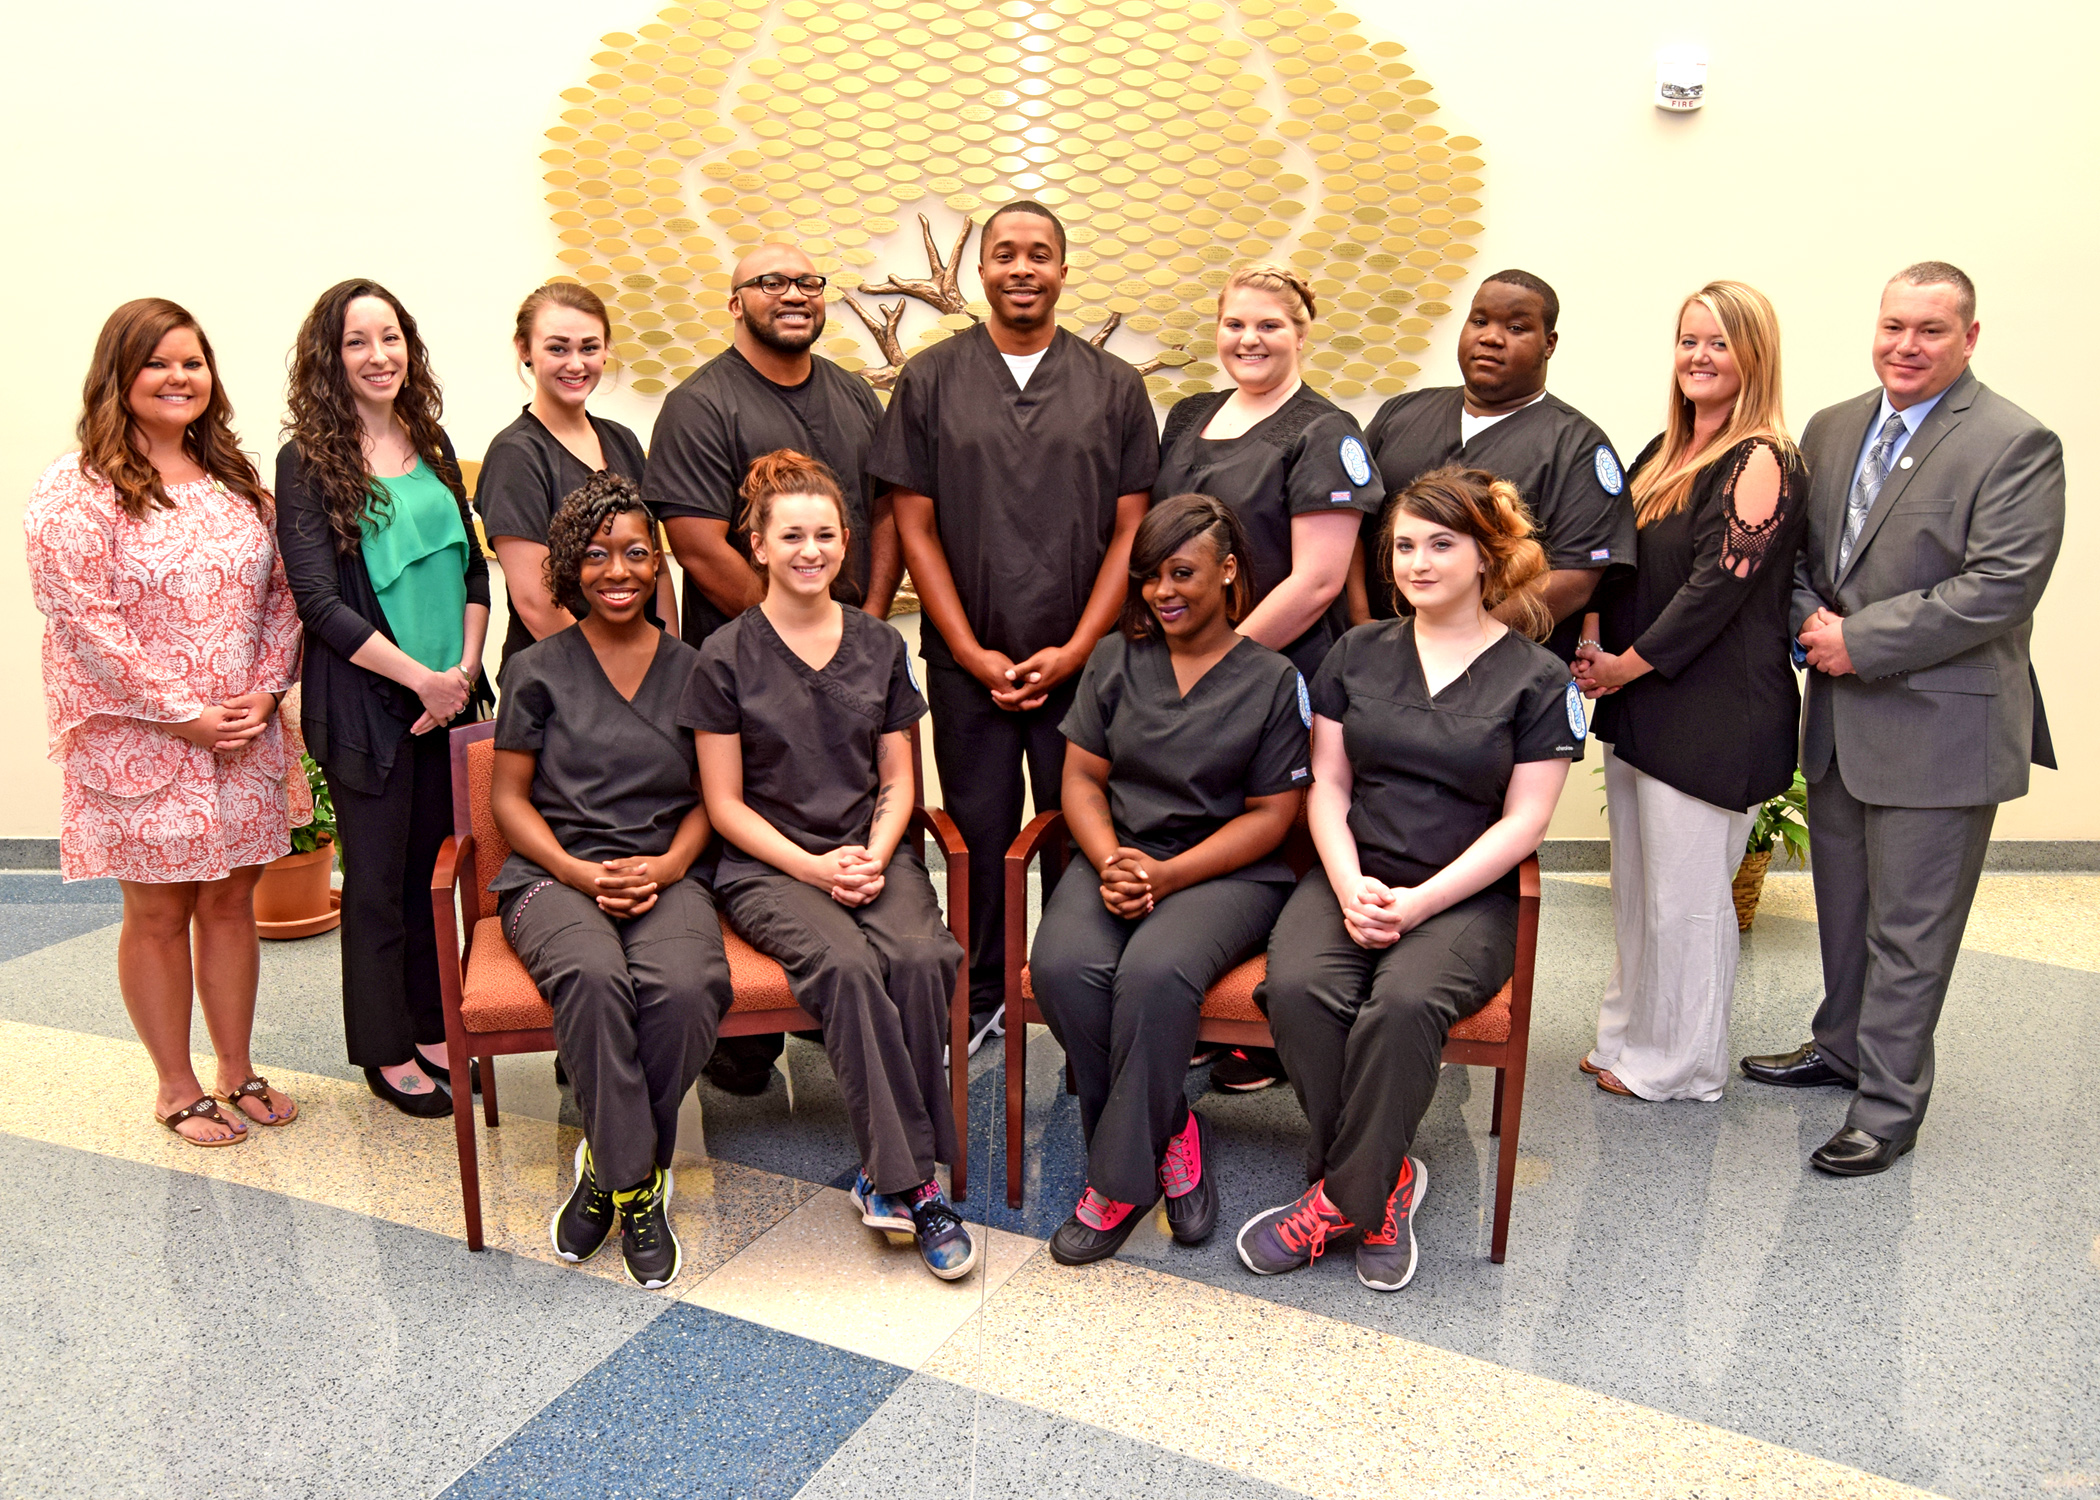 Associate Degree of Nursing Group Shot|CCTC's Diploma in Applied Science with a major in Medical Assisting